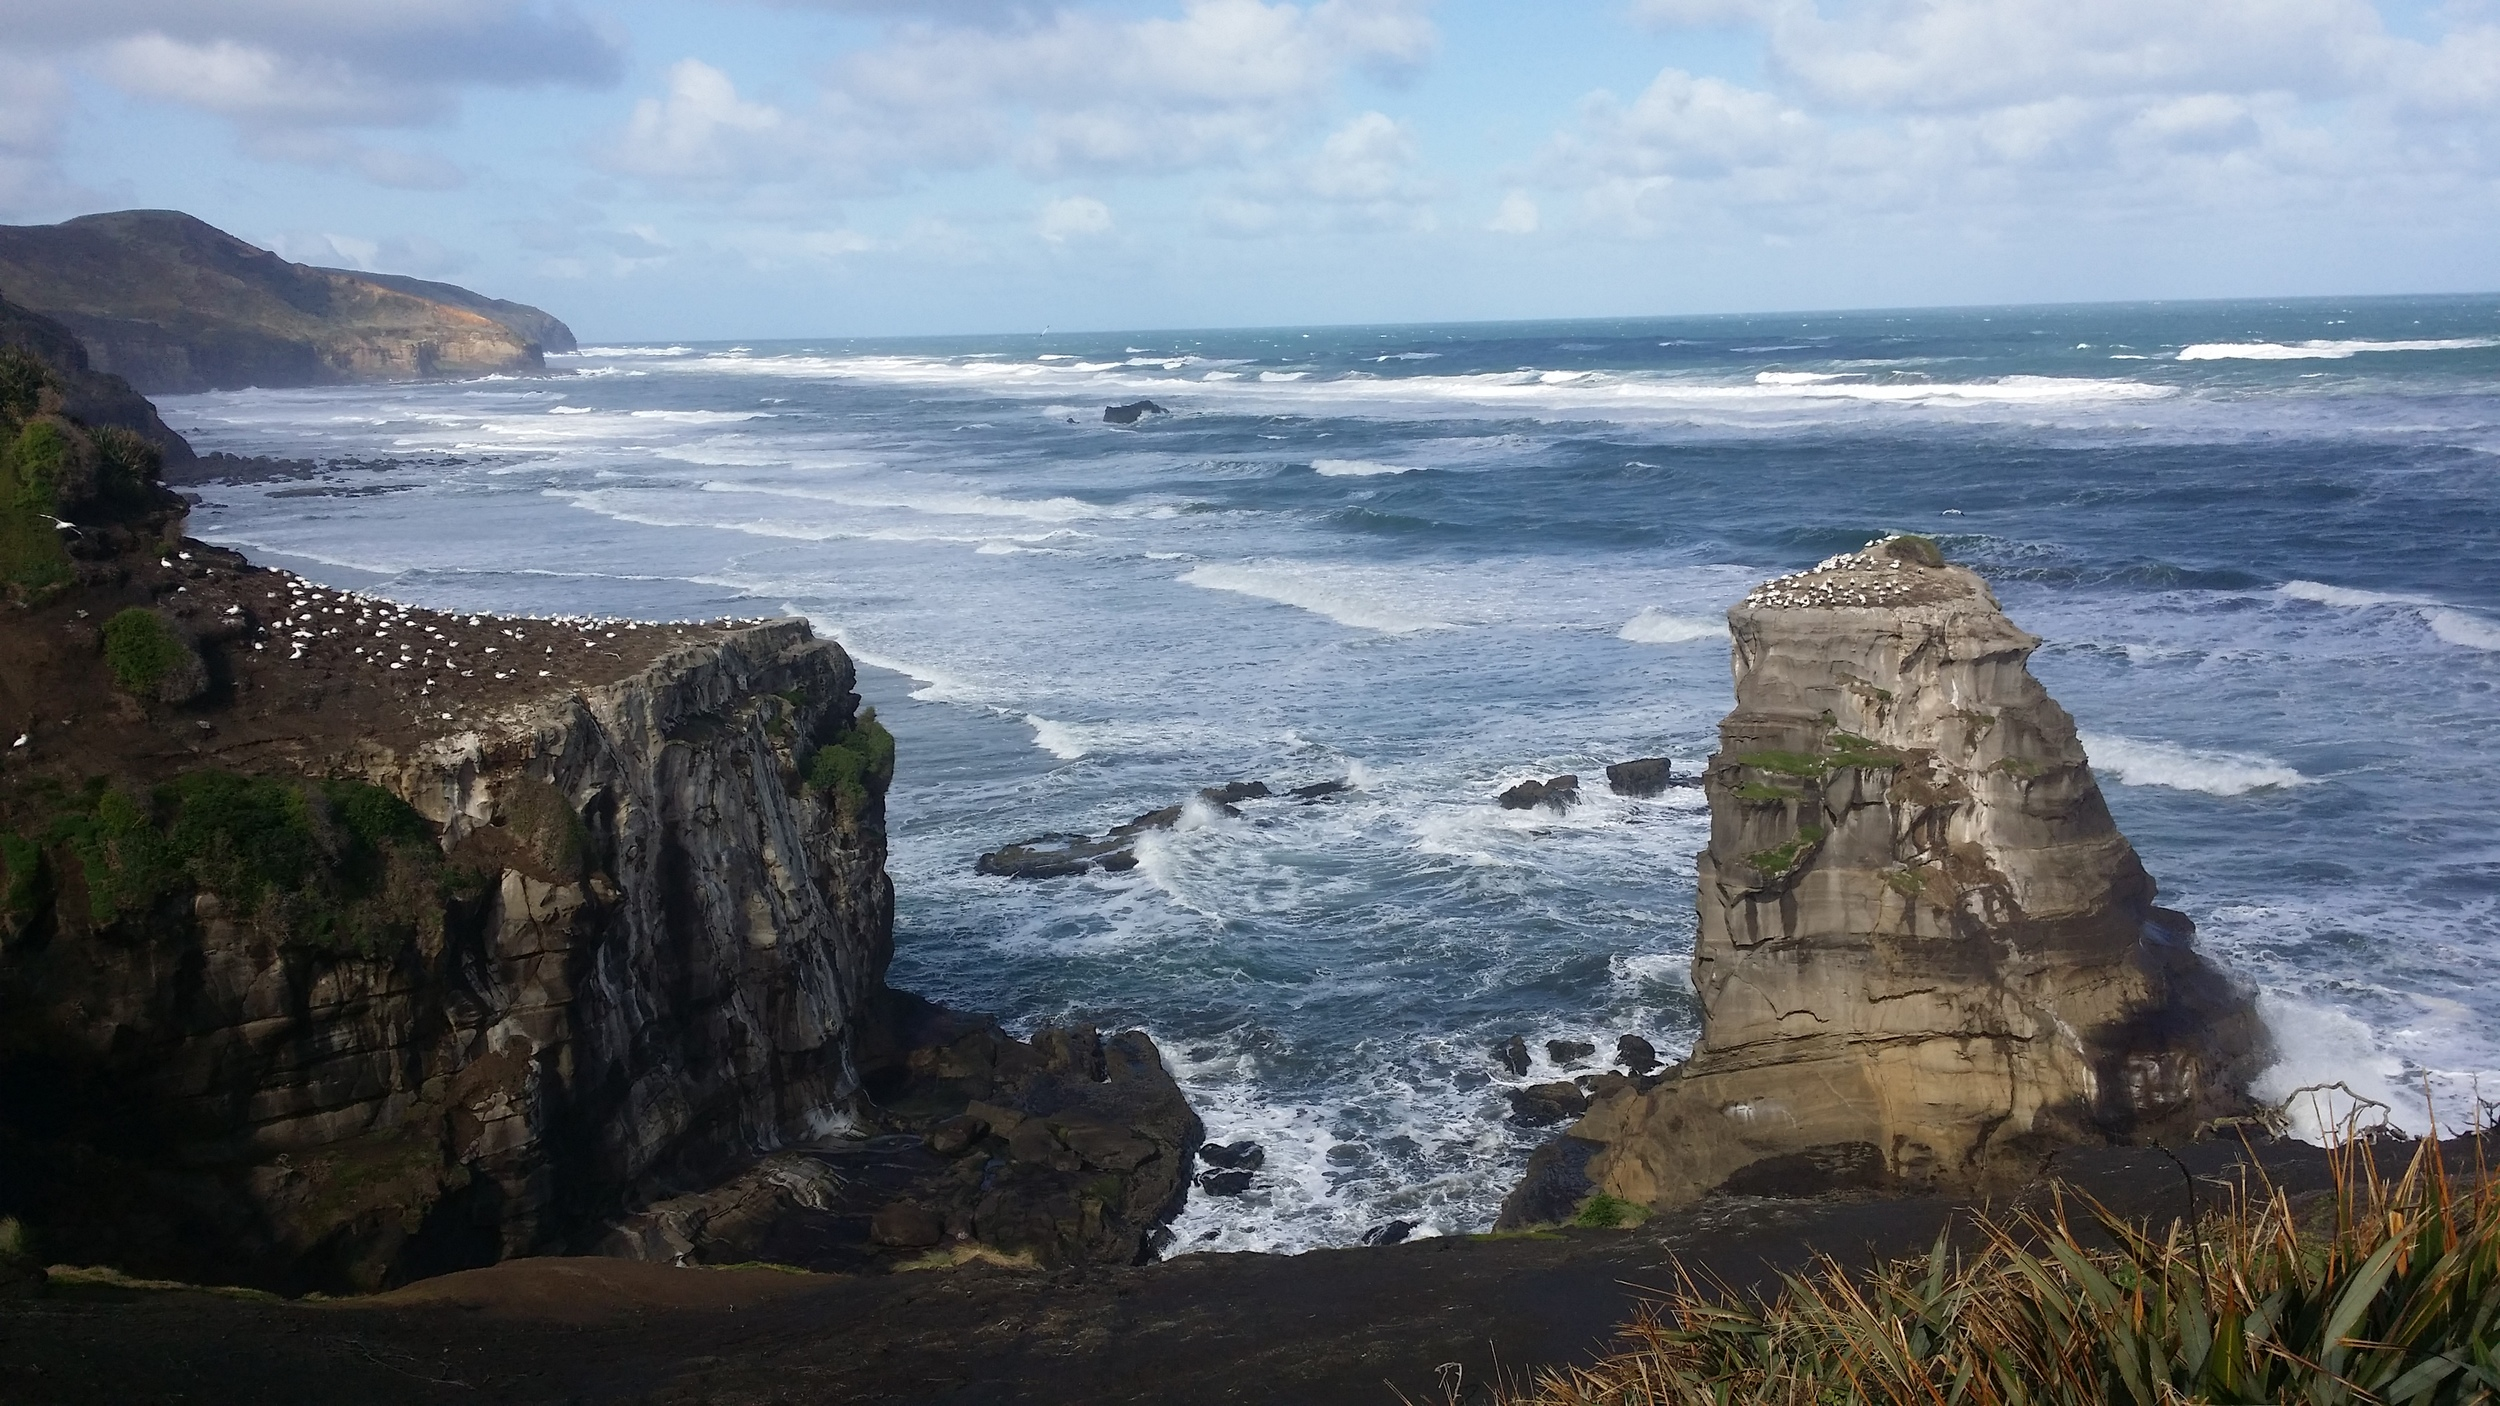 Gannet colony, Muriwai Beach, Auckland New Zealand